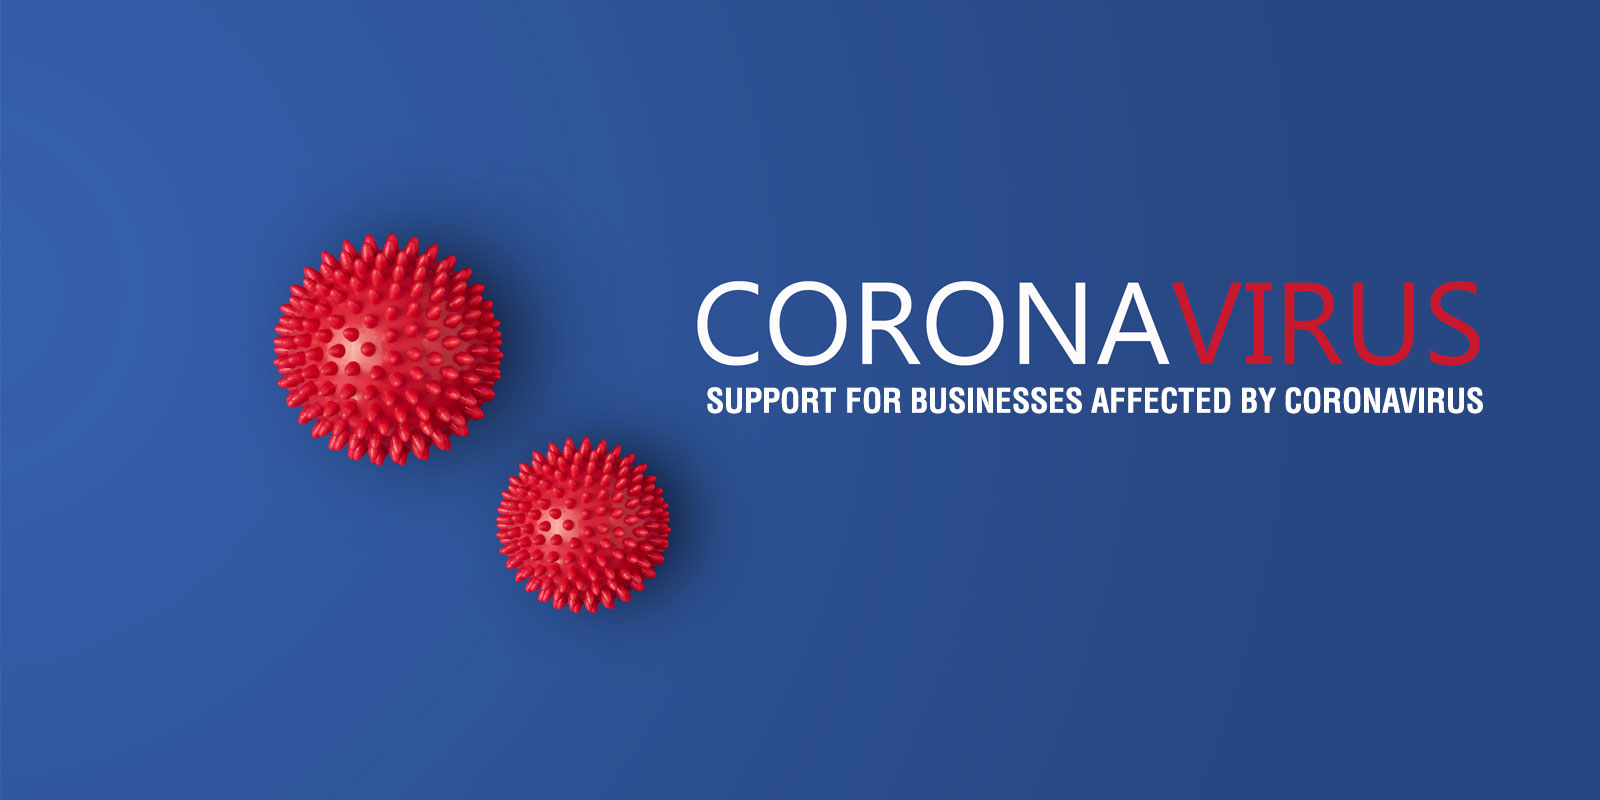 Support for businesses affected by coronavirus